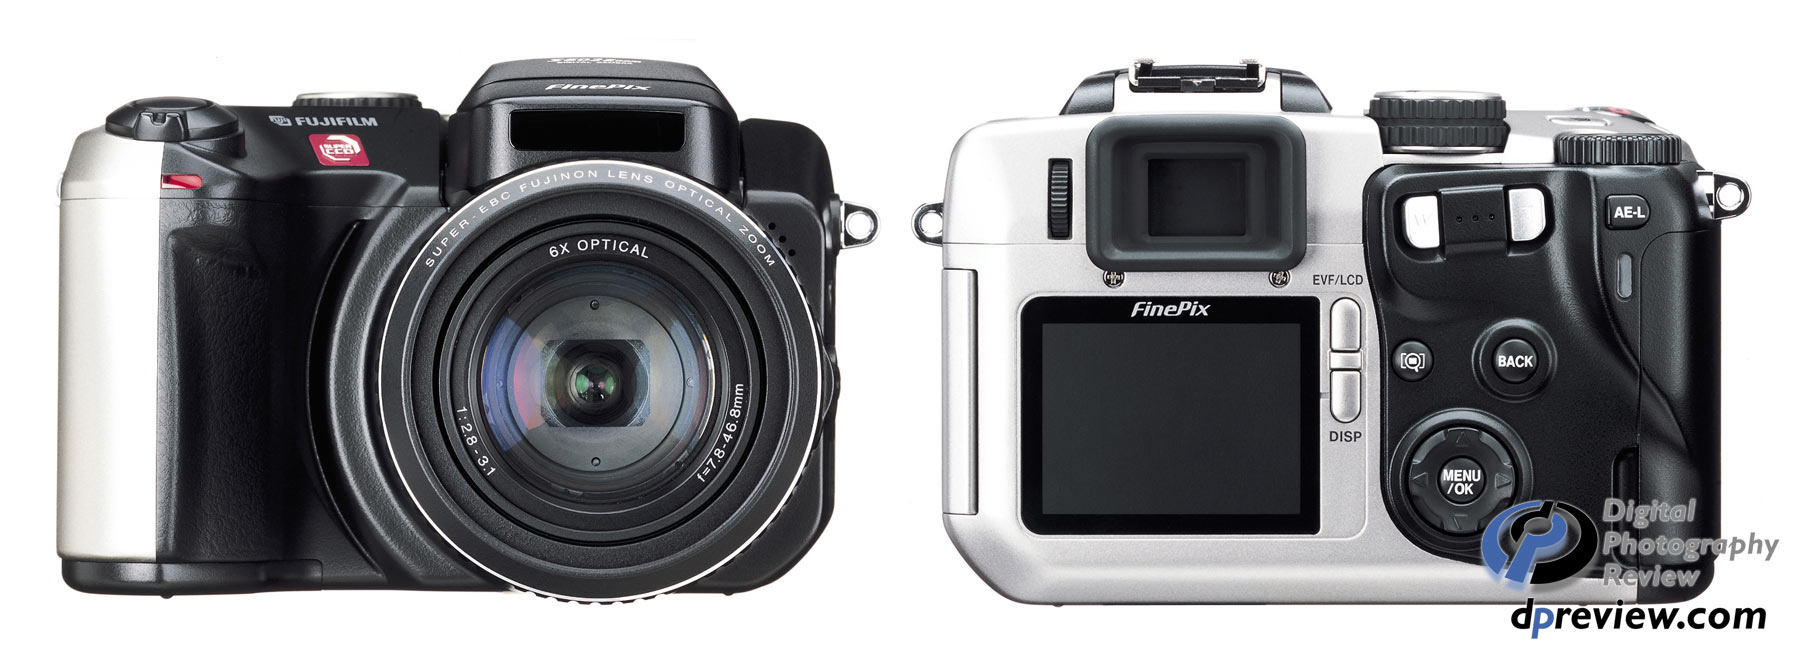 Fujifilm FinePix S602 Zoom specifications